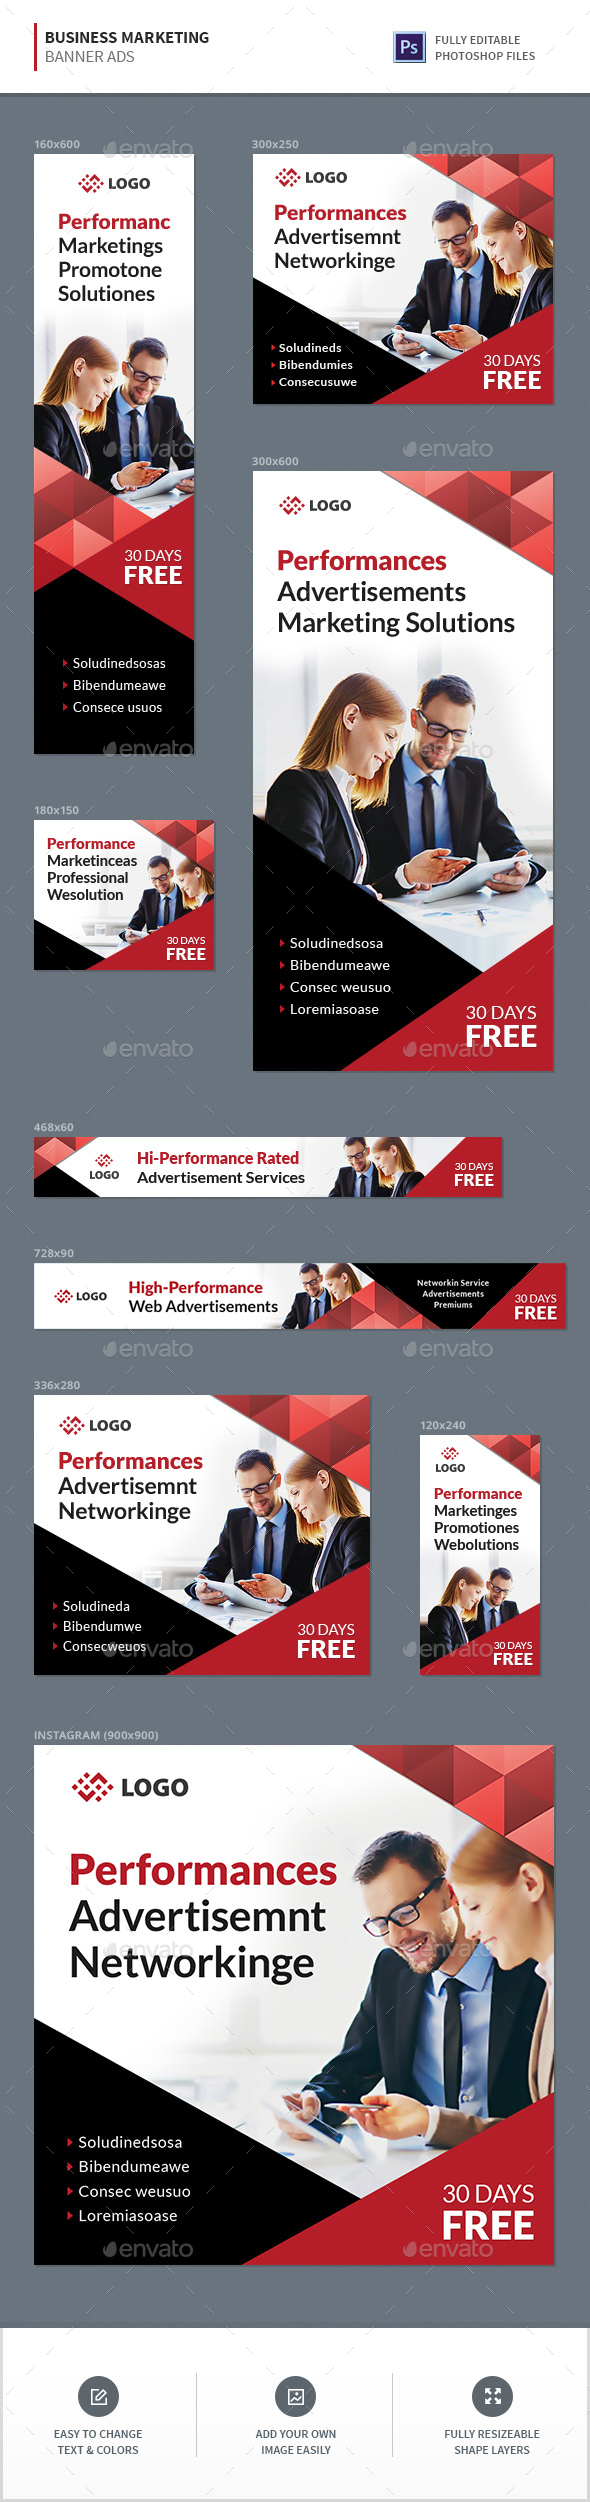 Business Marketing Banners - Banners & Ads Web Elements